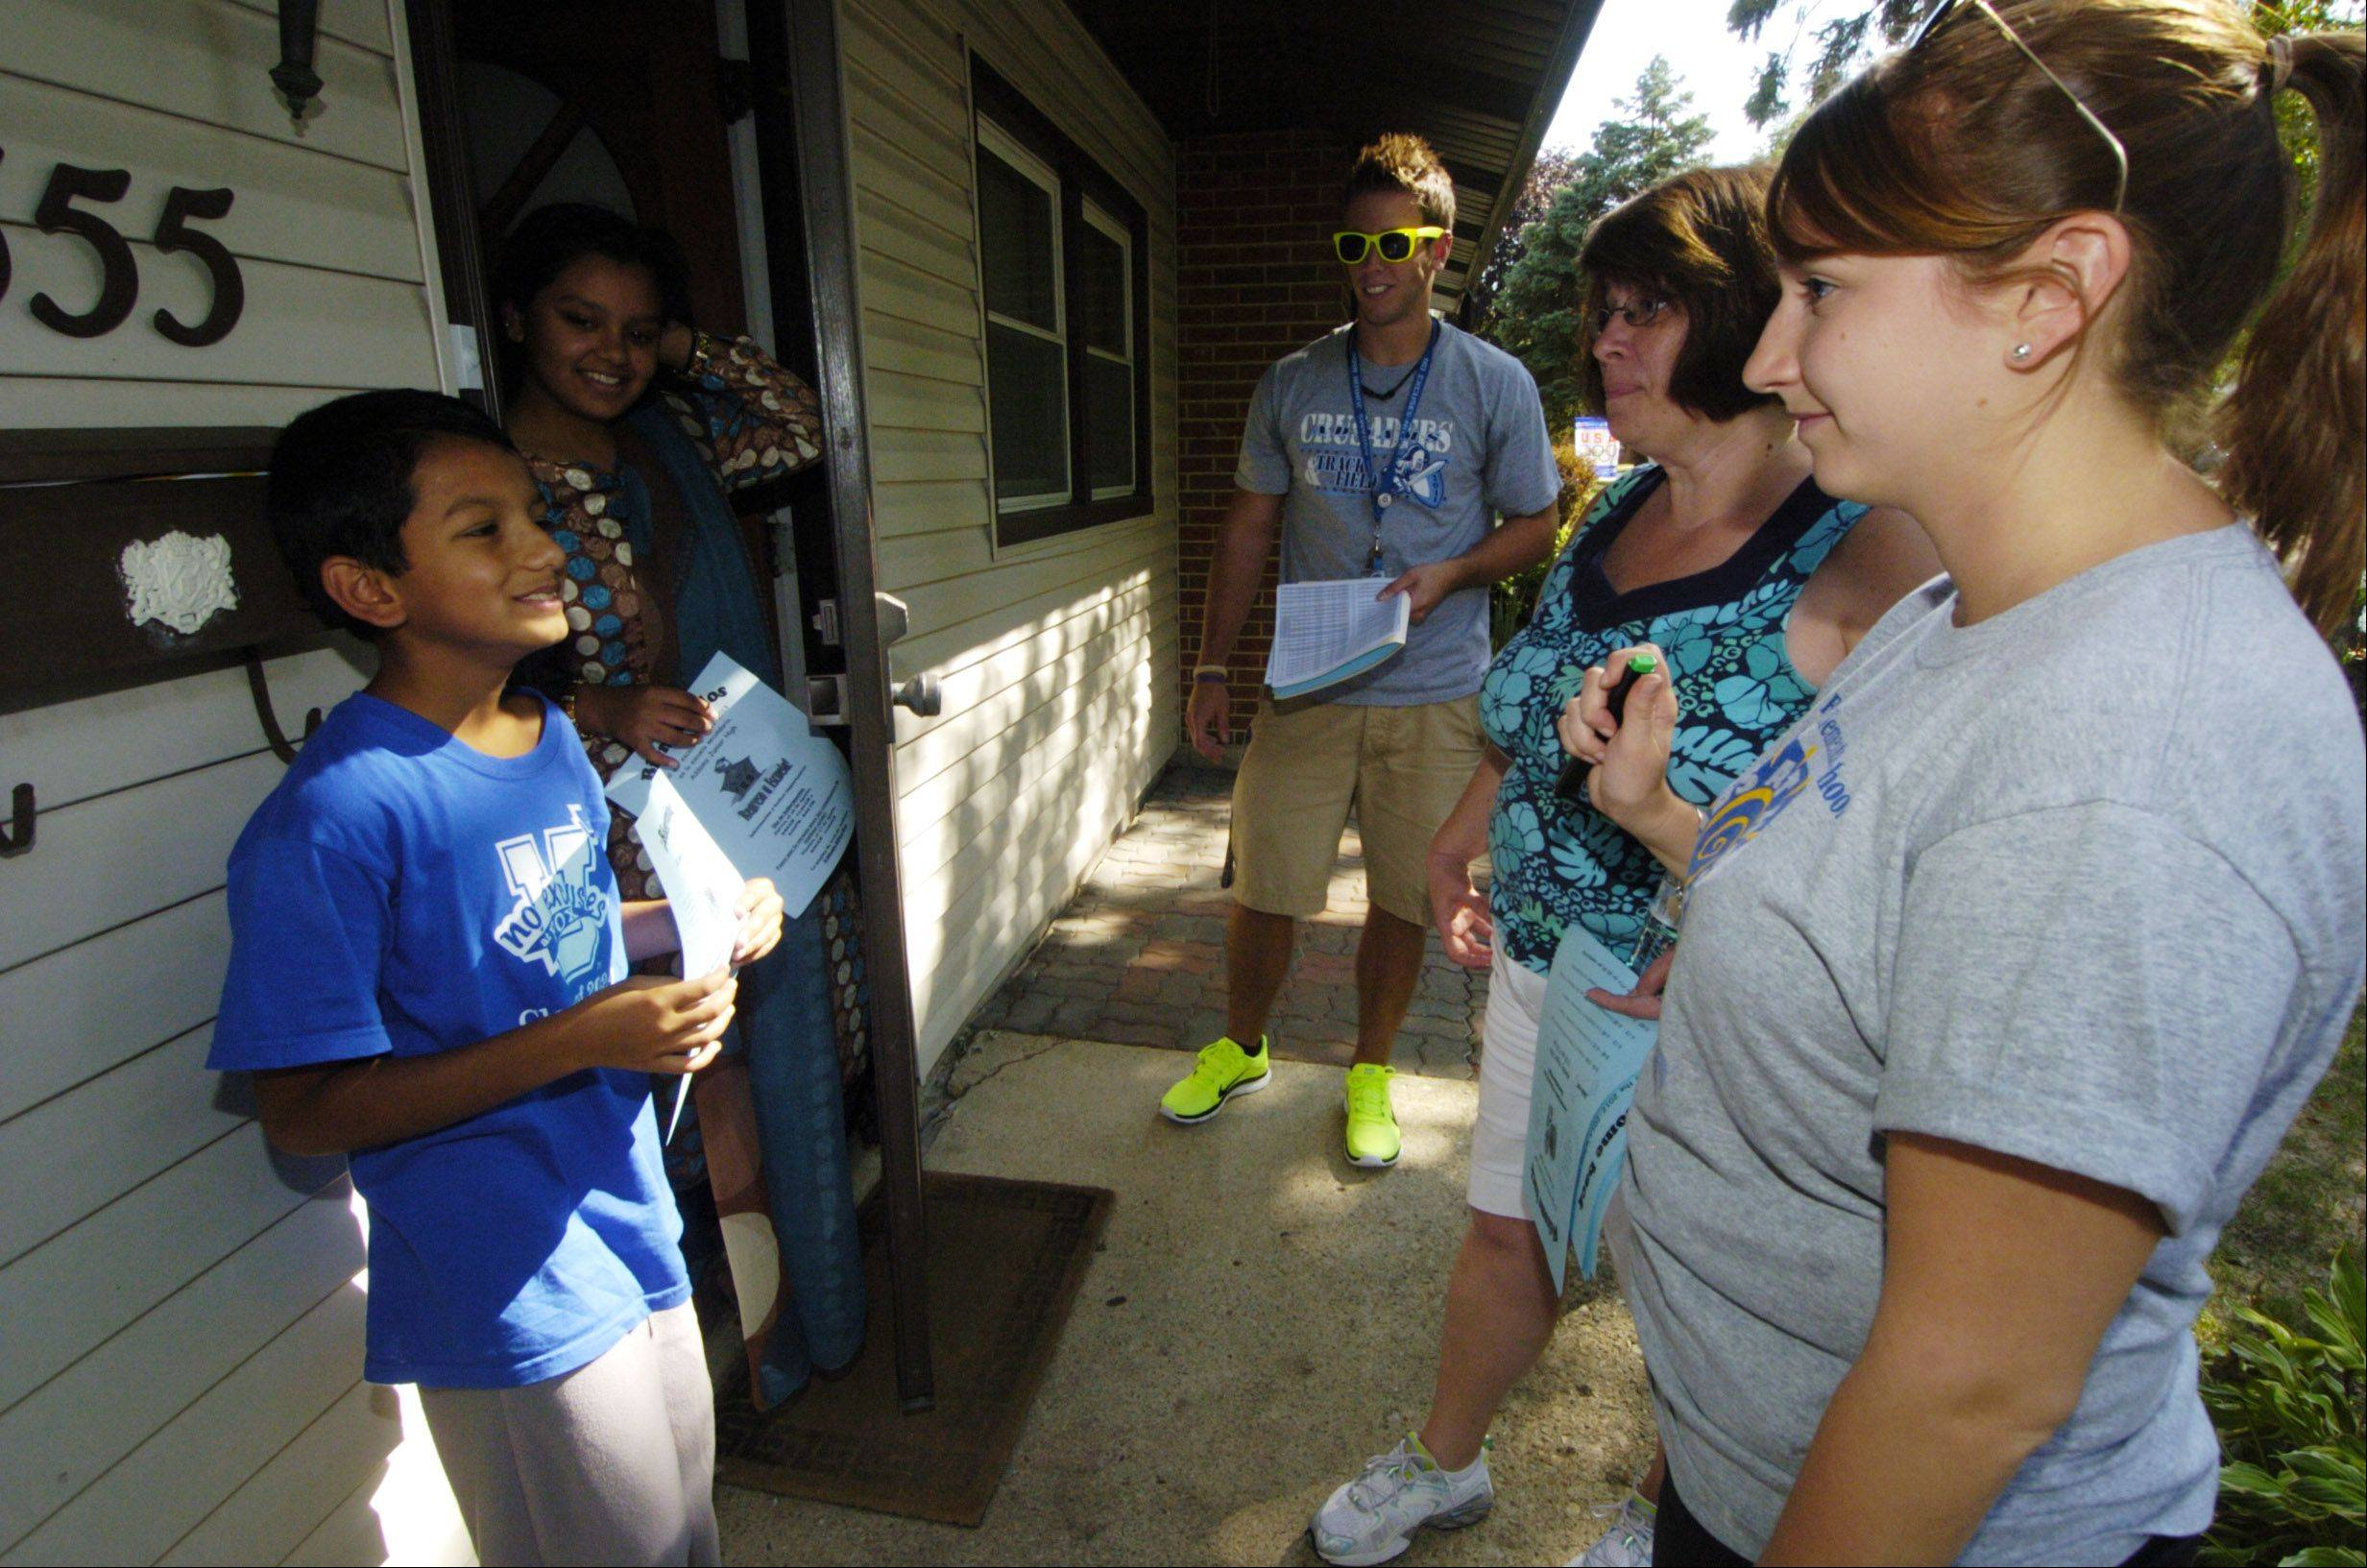 Fourth-grade teacher Nancy Hellstrom, second from right, and literacy coach Melissa Howard, right, talk to Syed Rahman on Wednesday as teachers and staff from Anne Fox Elementary School in Hanover Park visit the homes of students to welcome them back to school.